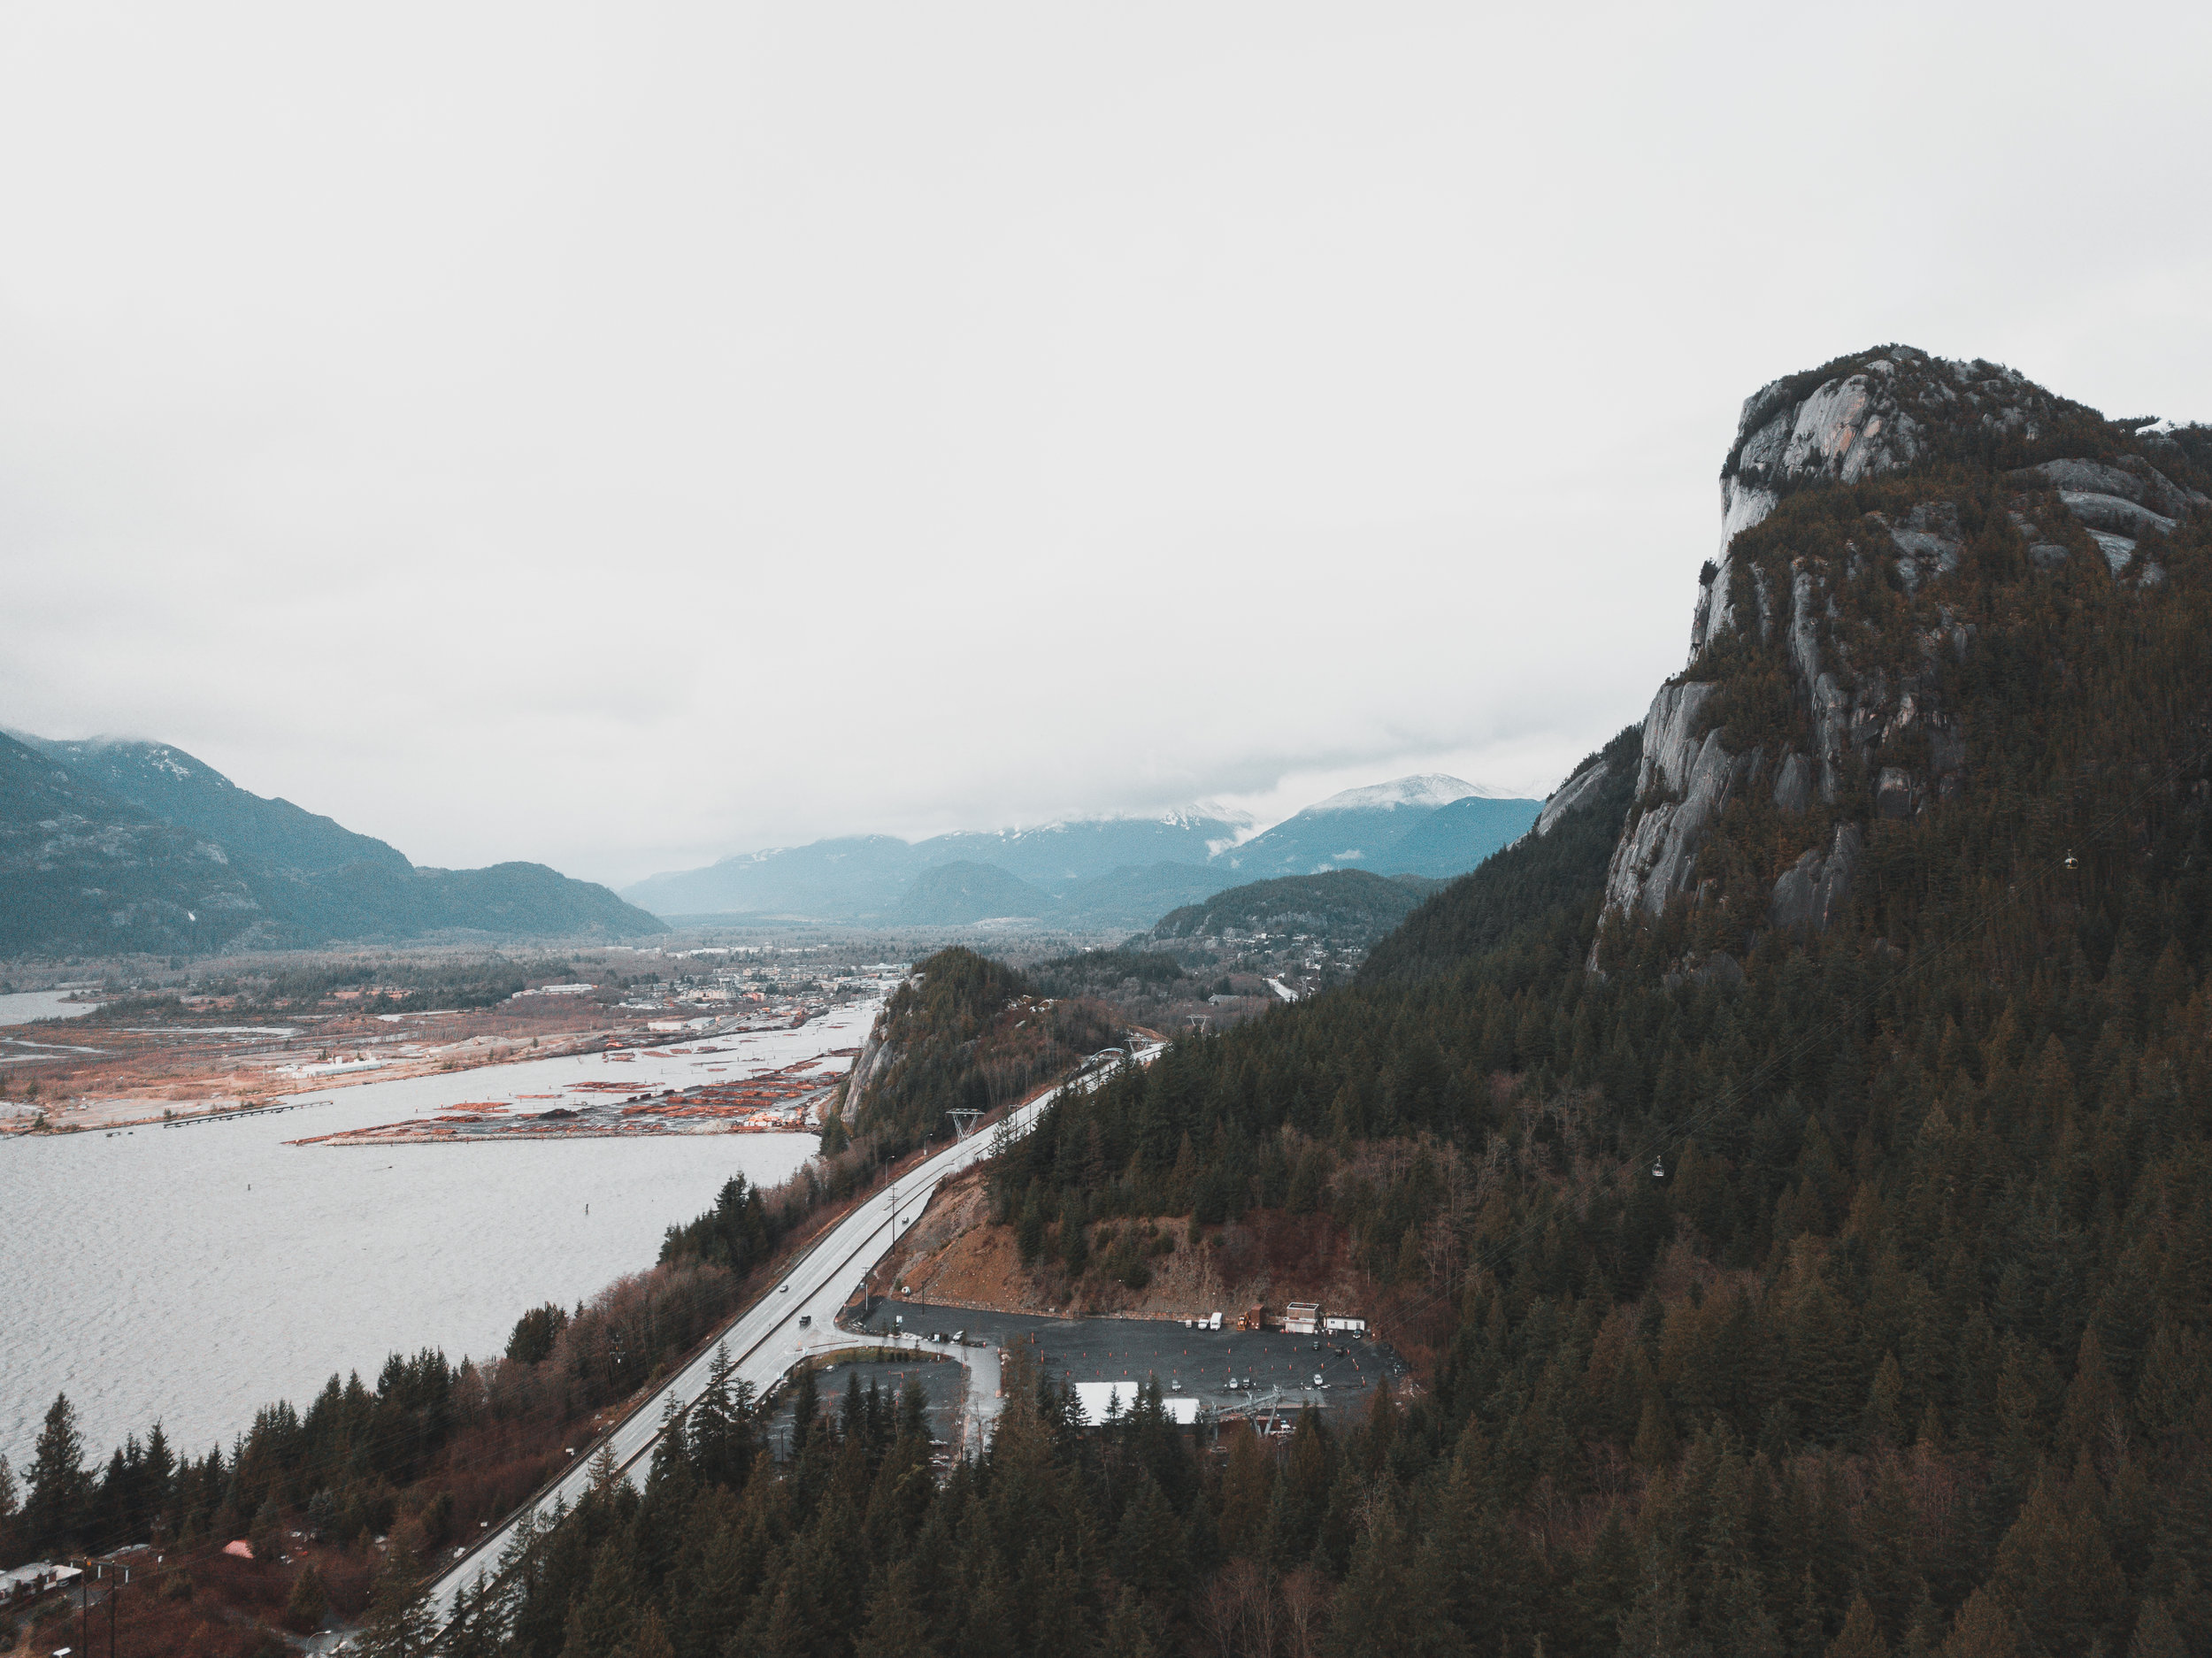 Staying in Squamish BC for the weekend